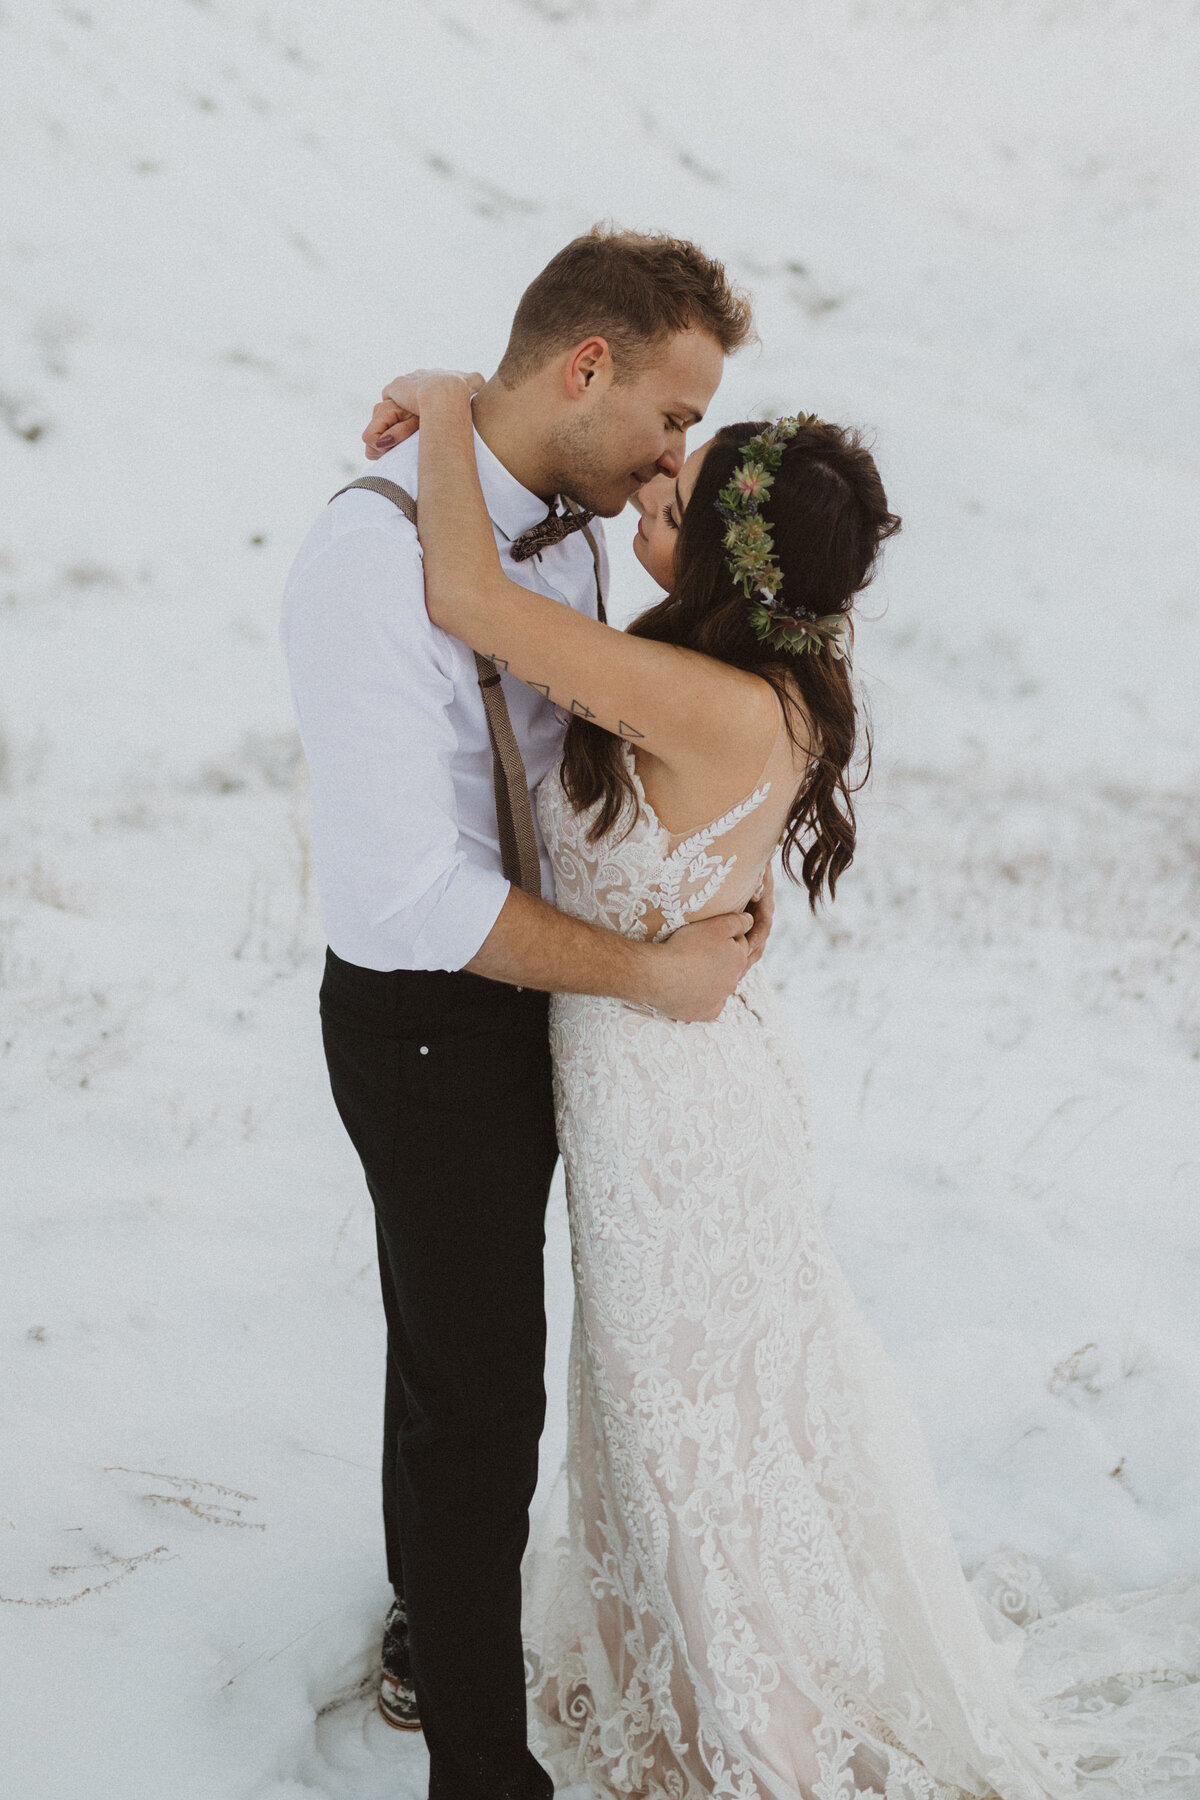 liv_hettinga_photography_drumheller_winter_elopement-32